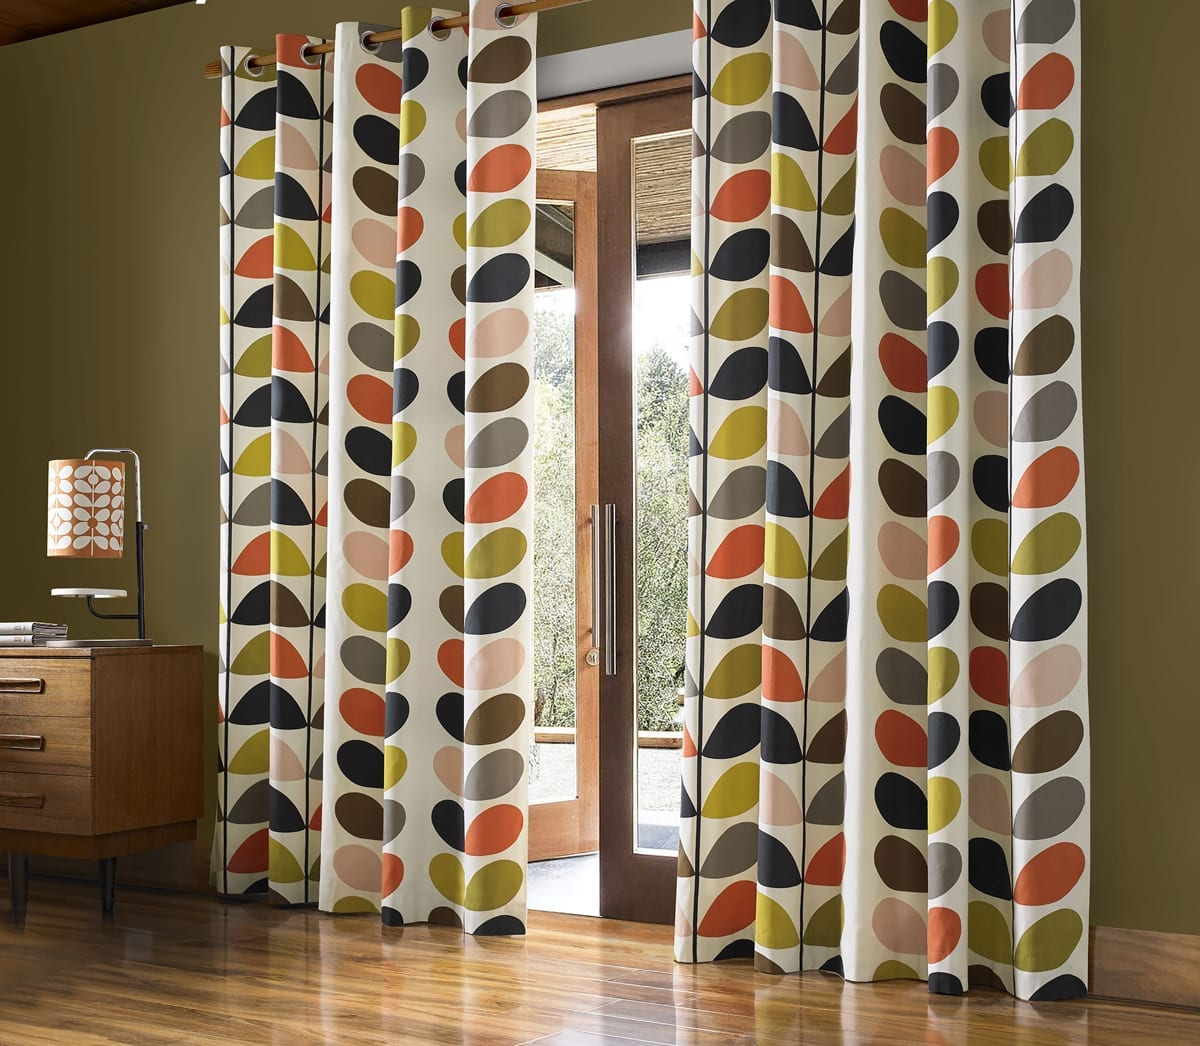 Sekers Orla Kiely Fabric Collection